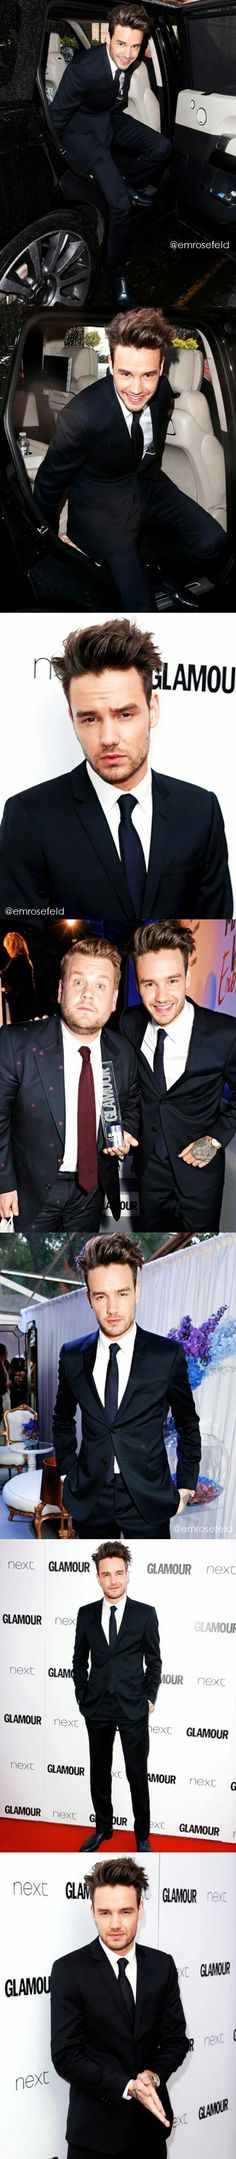 Liam with James